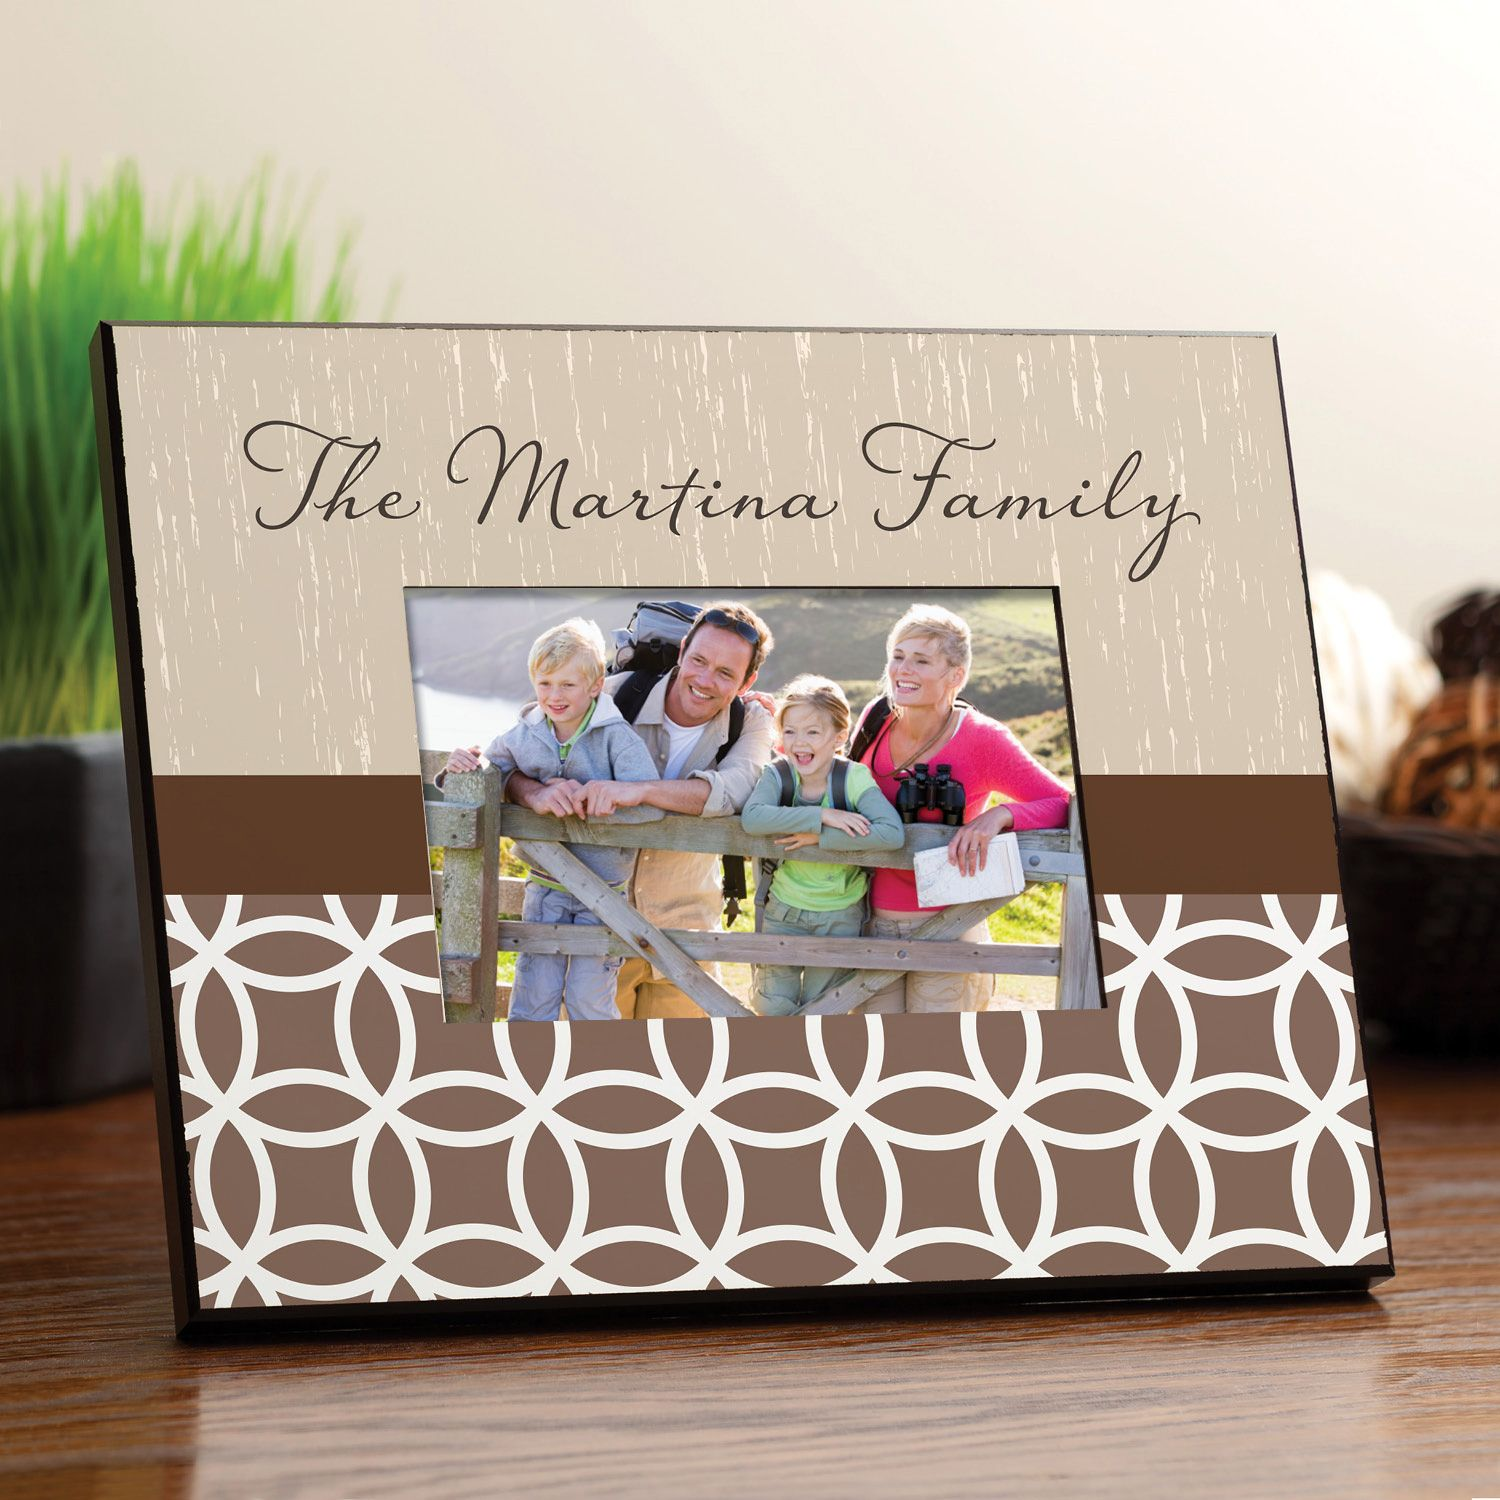 Celebrate your family in style with this unique frame